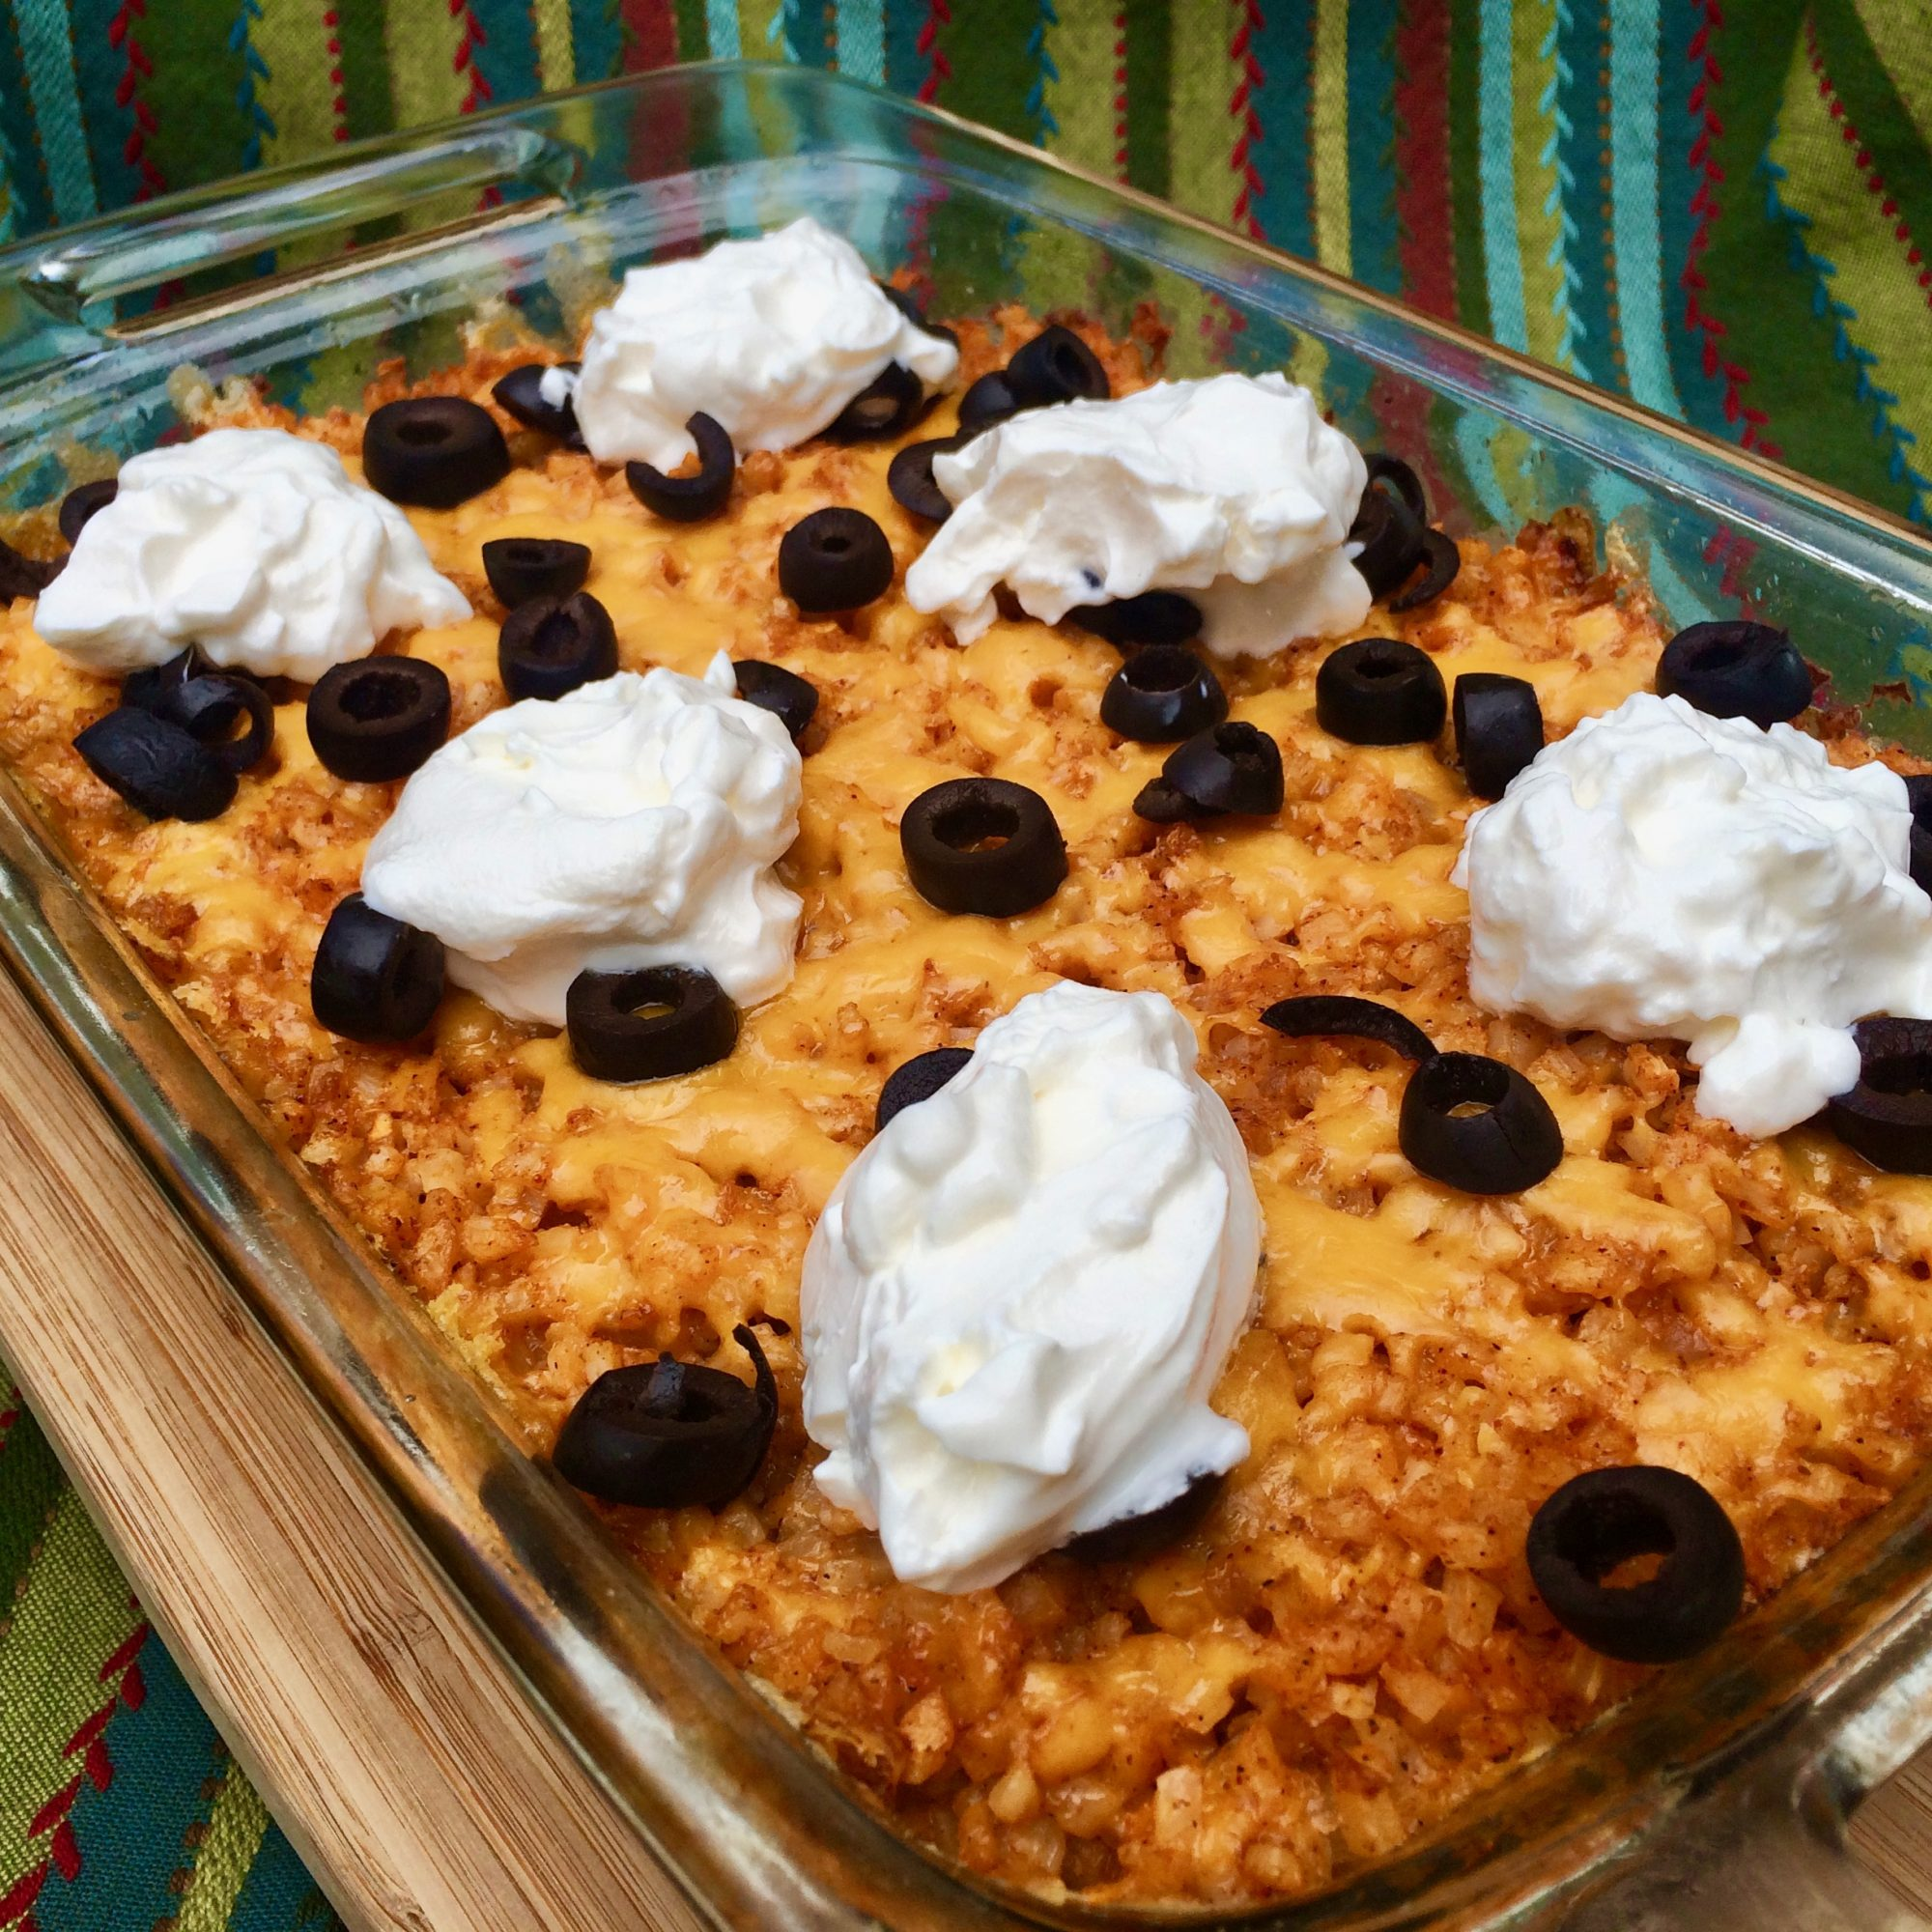 Keto Tex-Mex Ground Beef Casserole with sour cream and olives